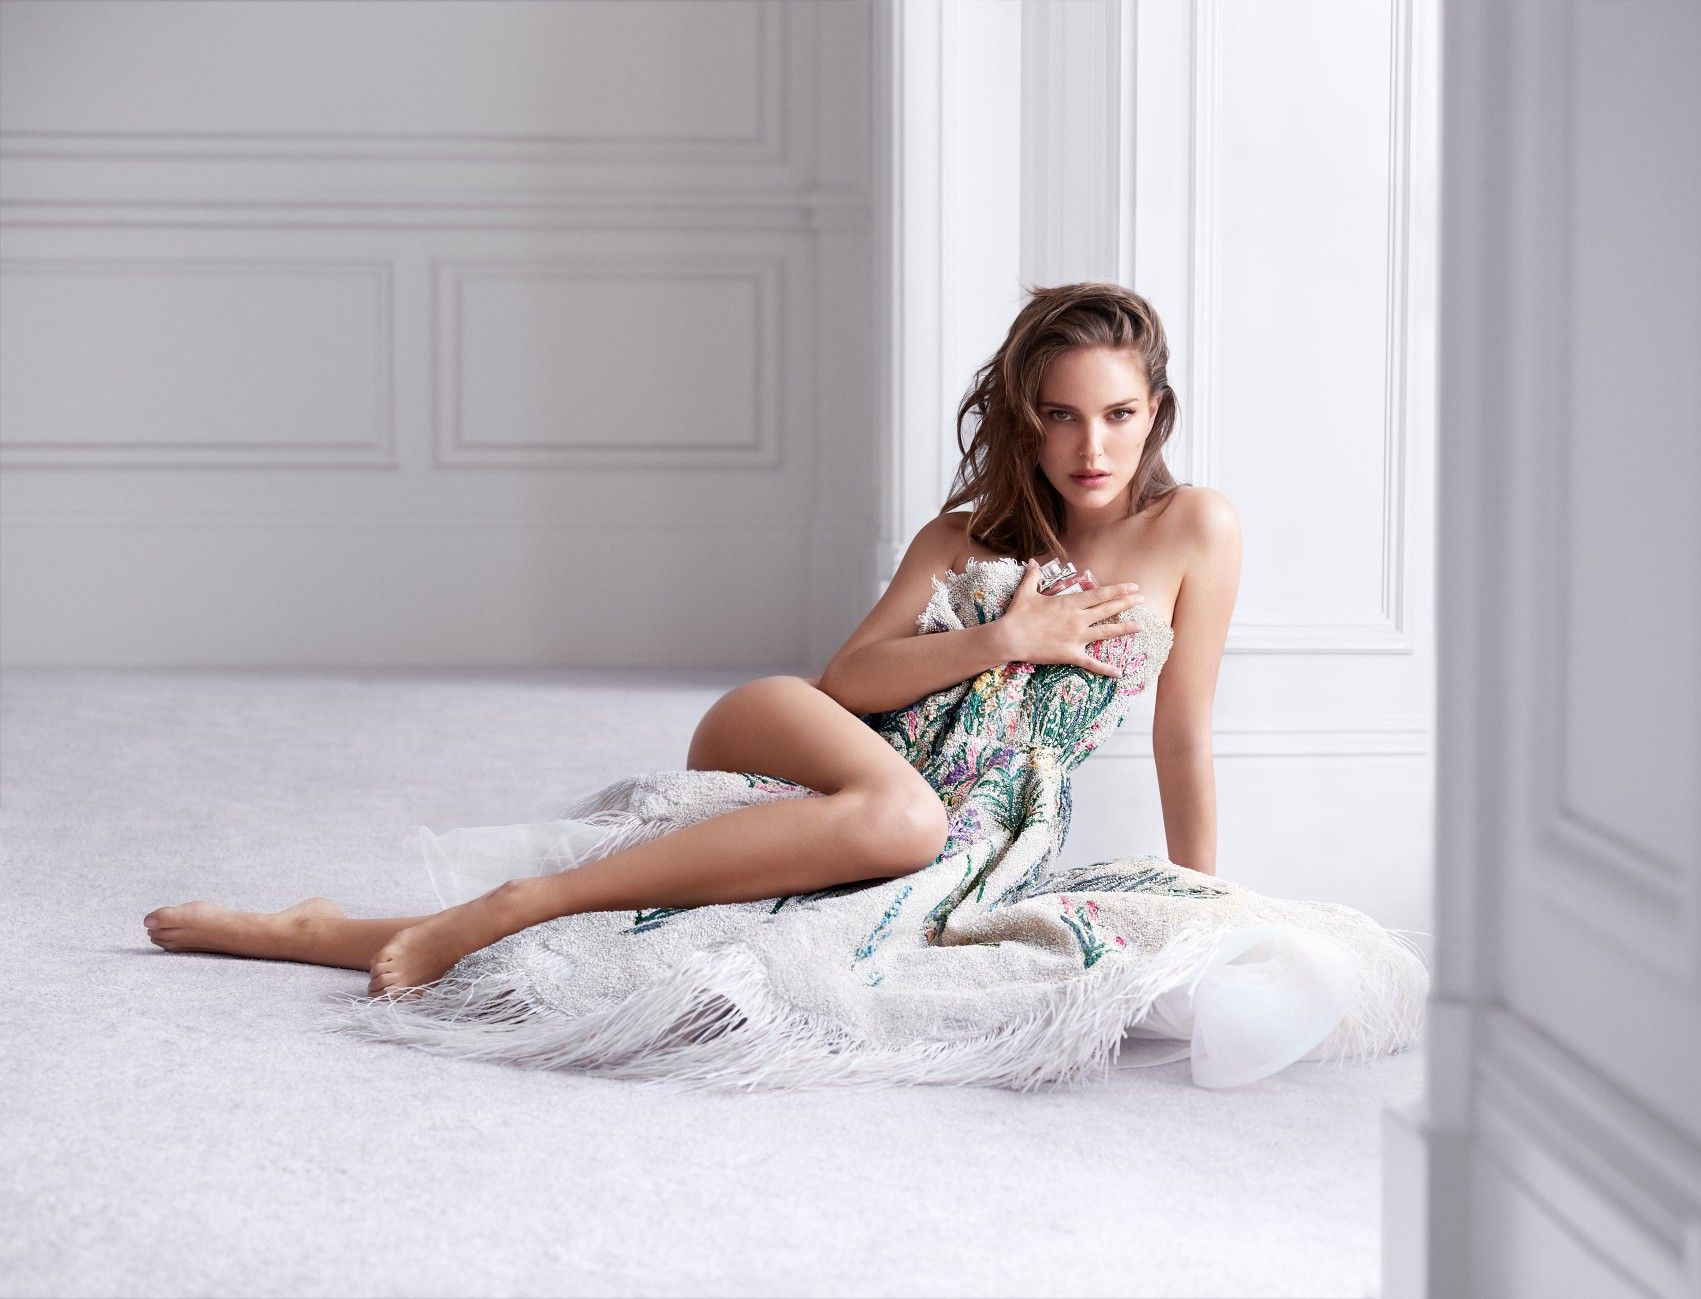 Hot Natalie Portman nude photos 2019